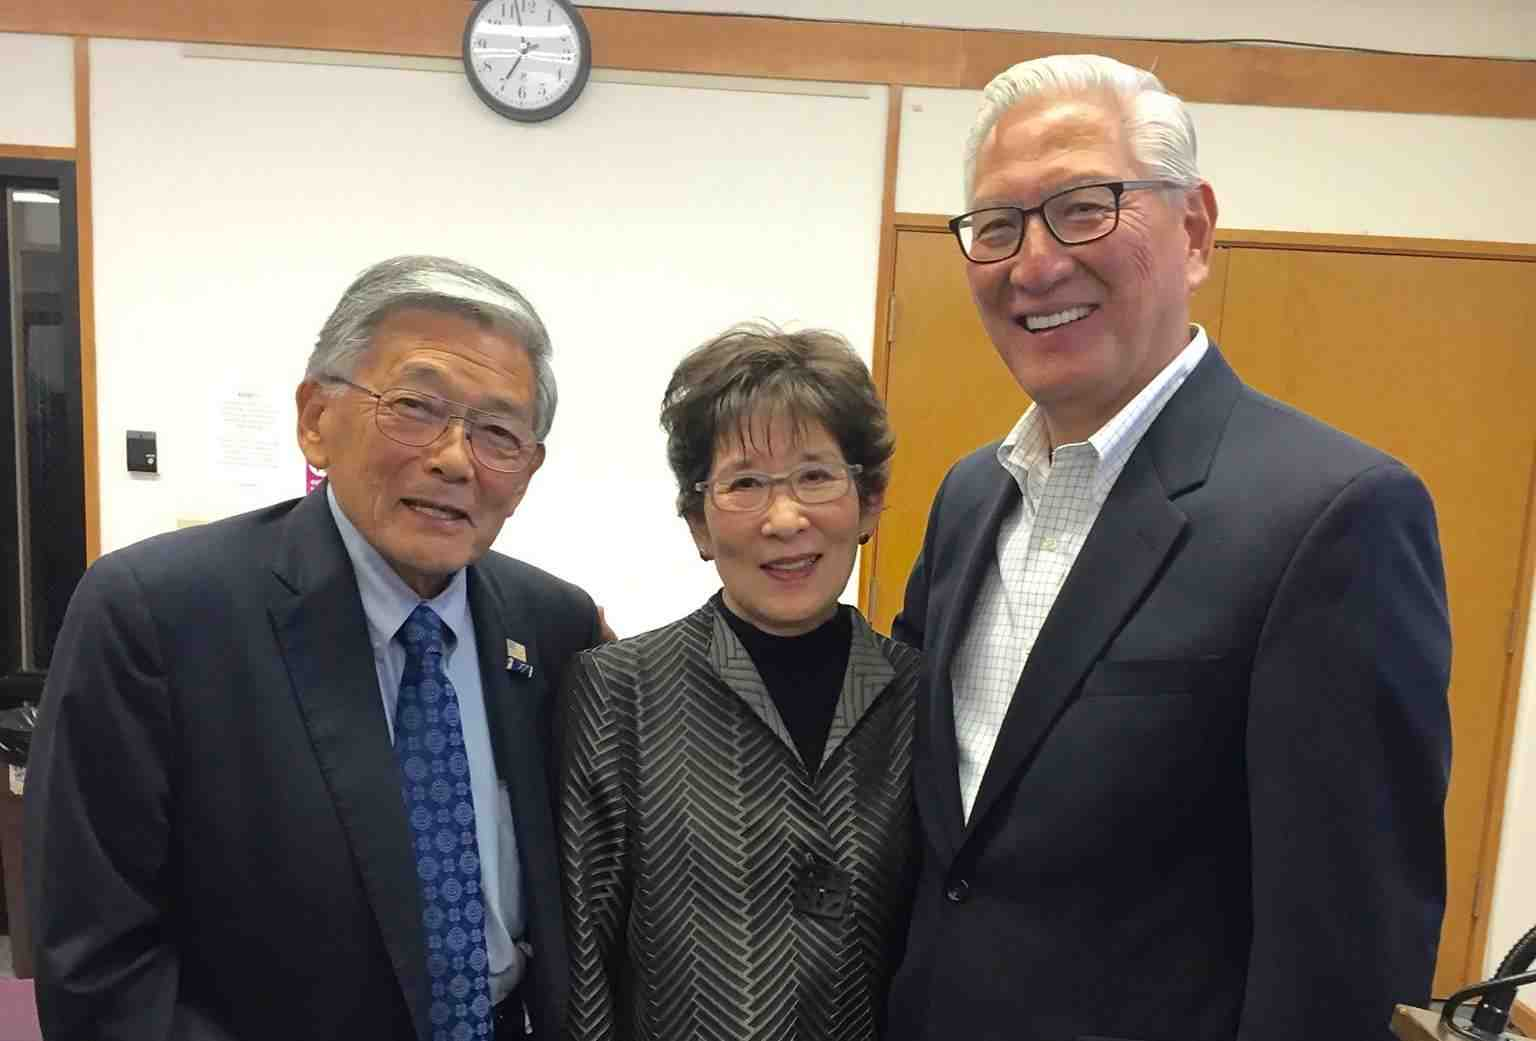 Former Secretary of Transportation Norman Mineta with Honda supporters Pat and Allen Okamoto.